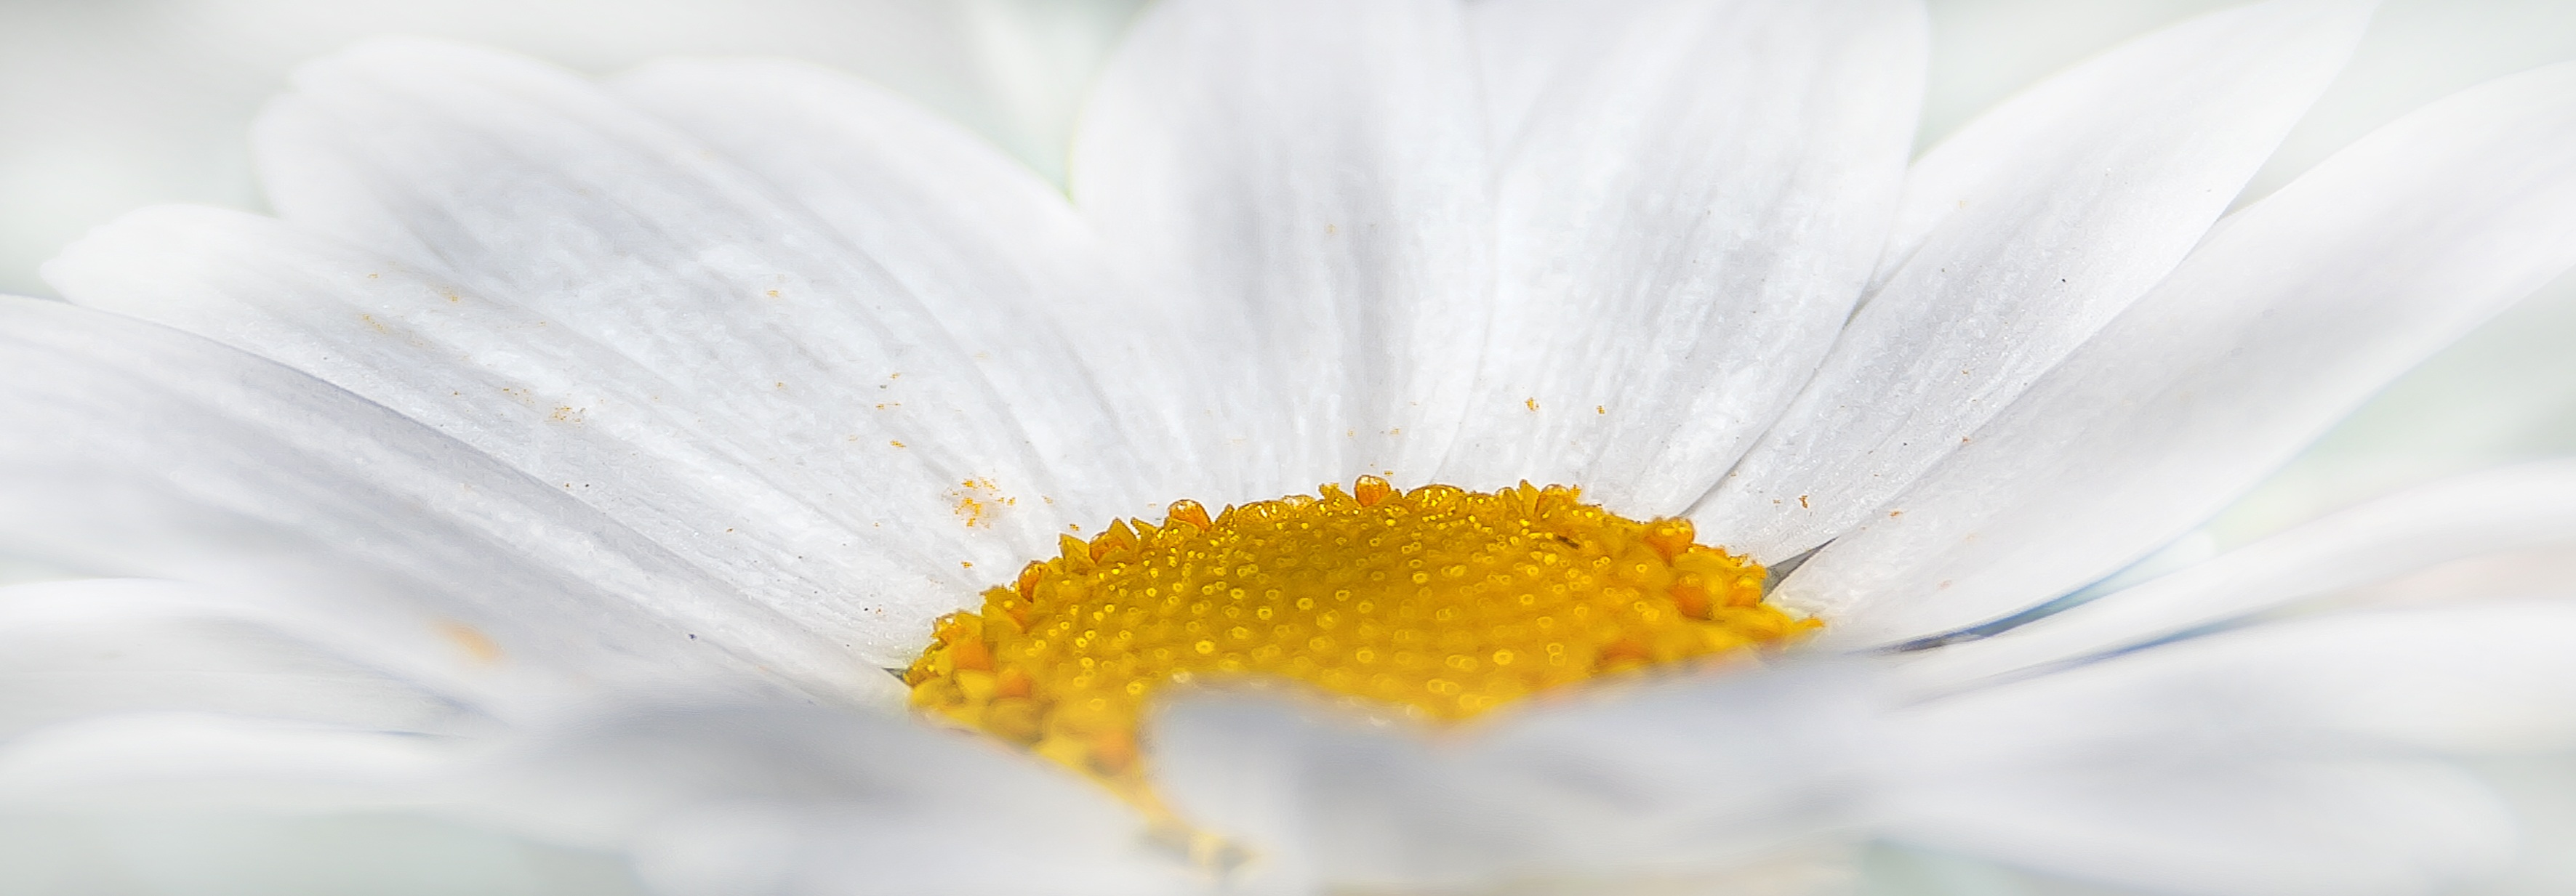 free stock photos of white flower · pexels, Beautiful flower